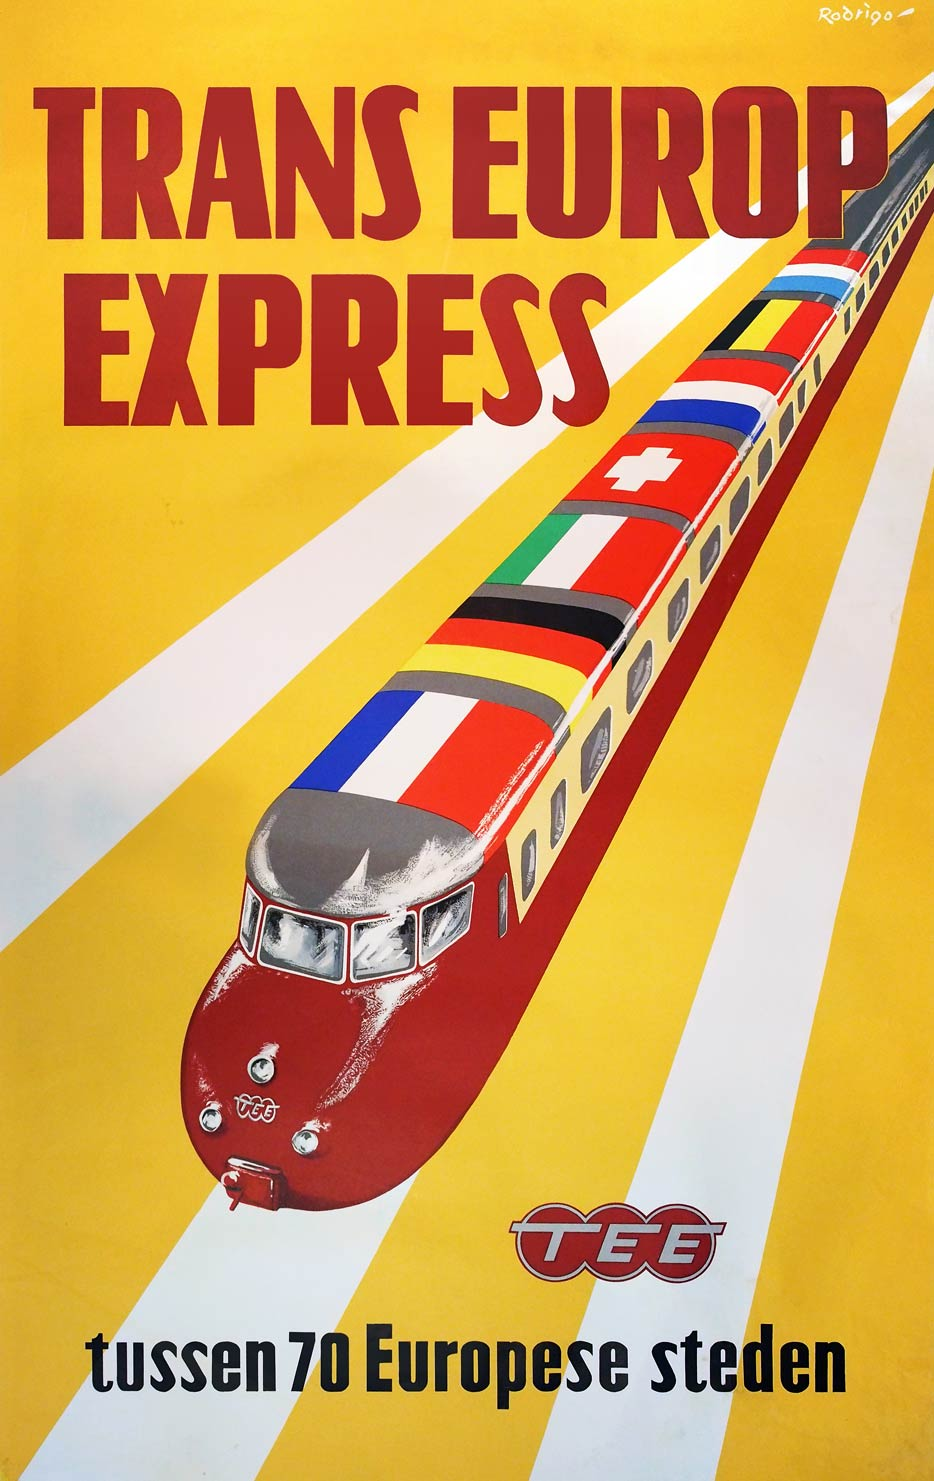 TEE Design, railcars on Trans Europ Express posters | retours